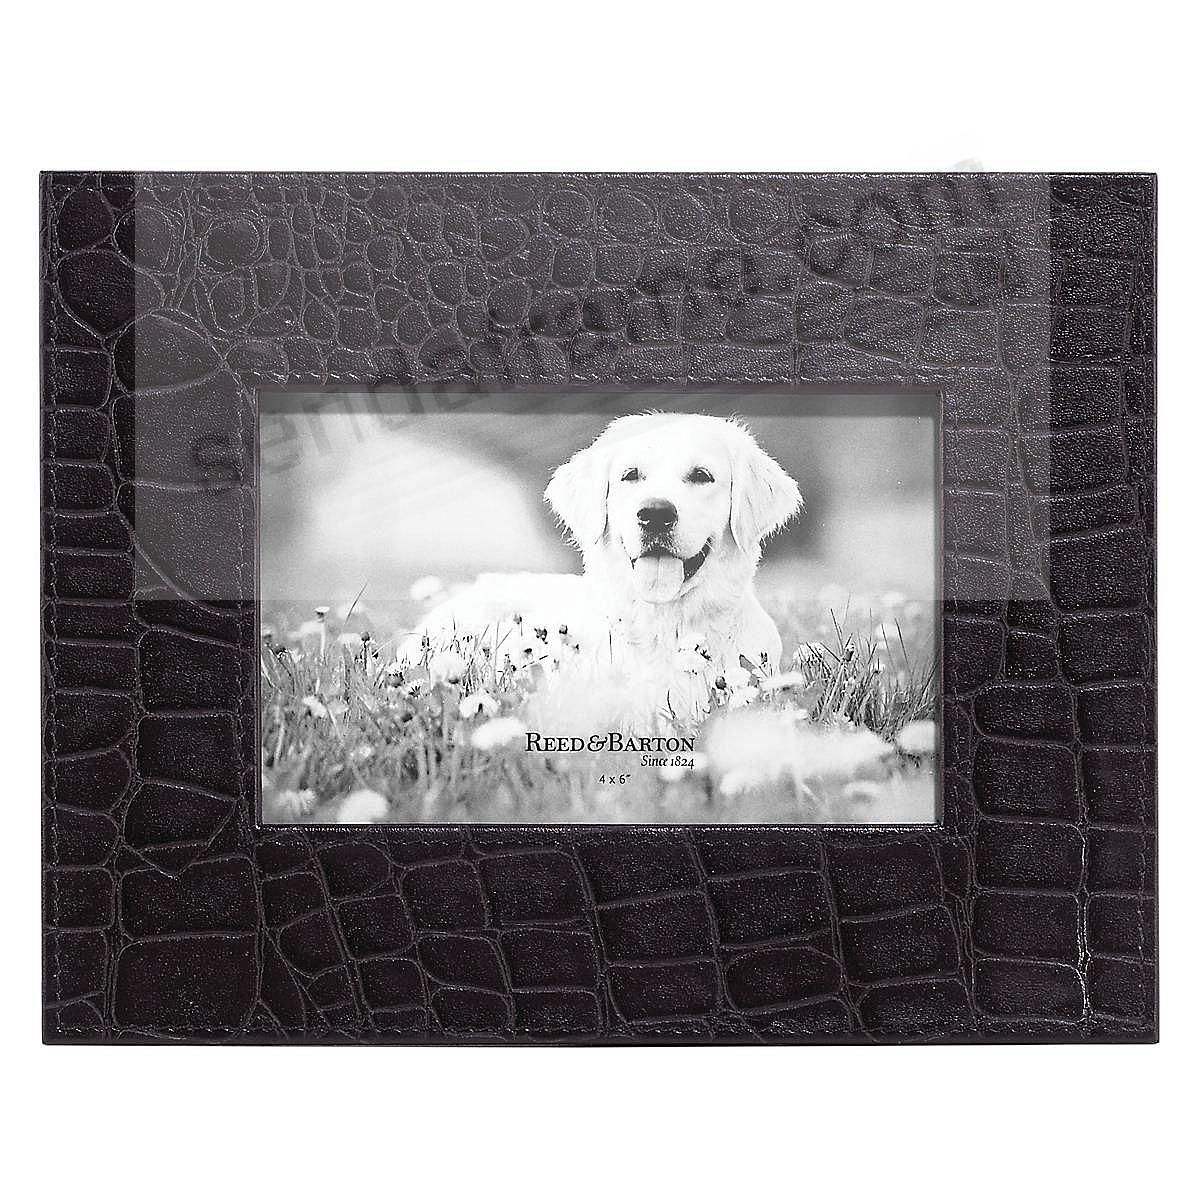 BLACK Croco-Leather GRIFFIN 4x6 Frame by Reed & Barton®